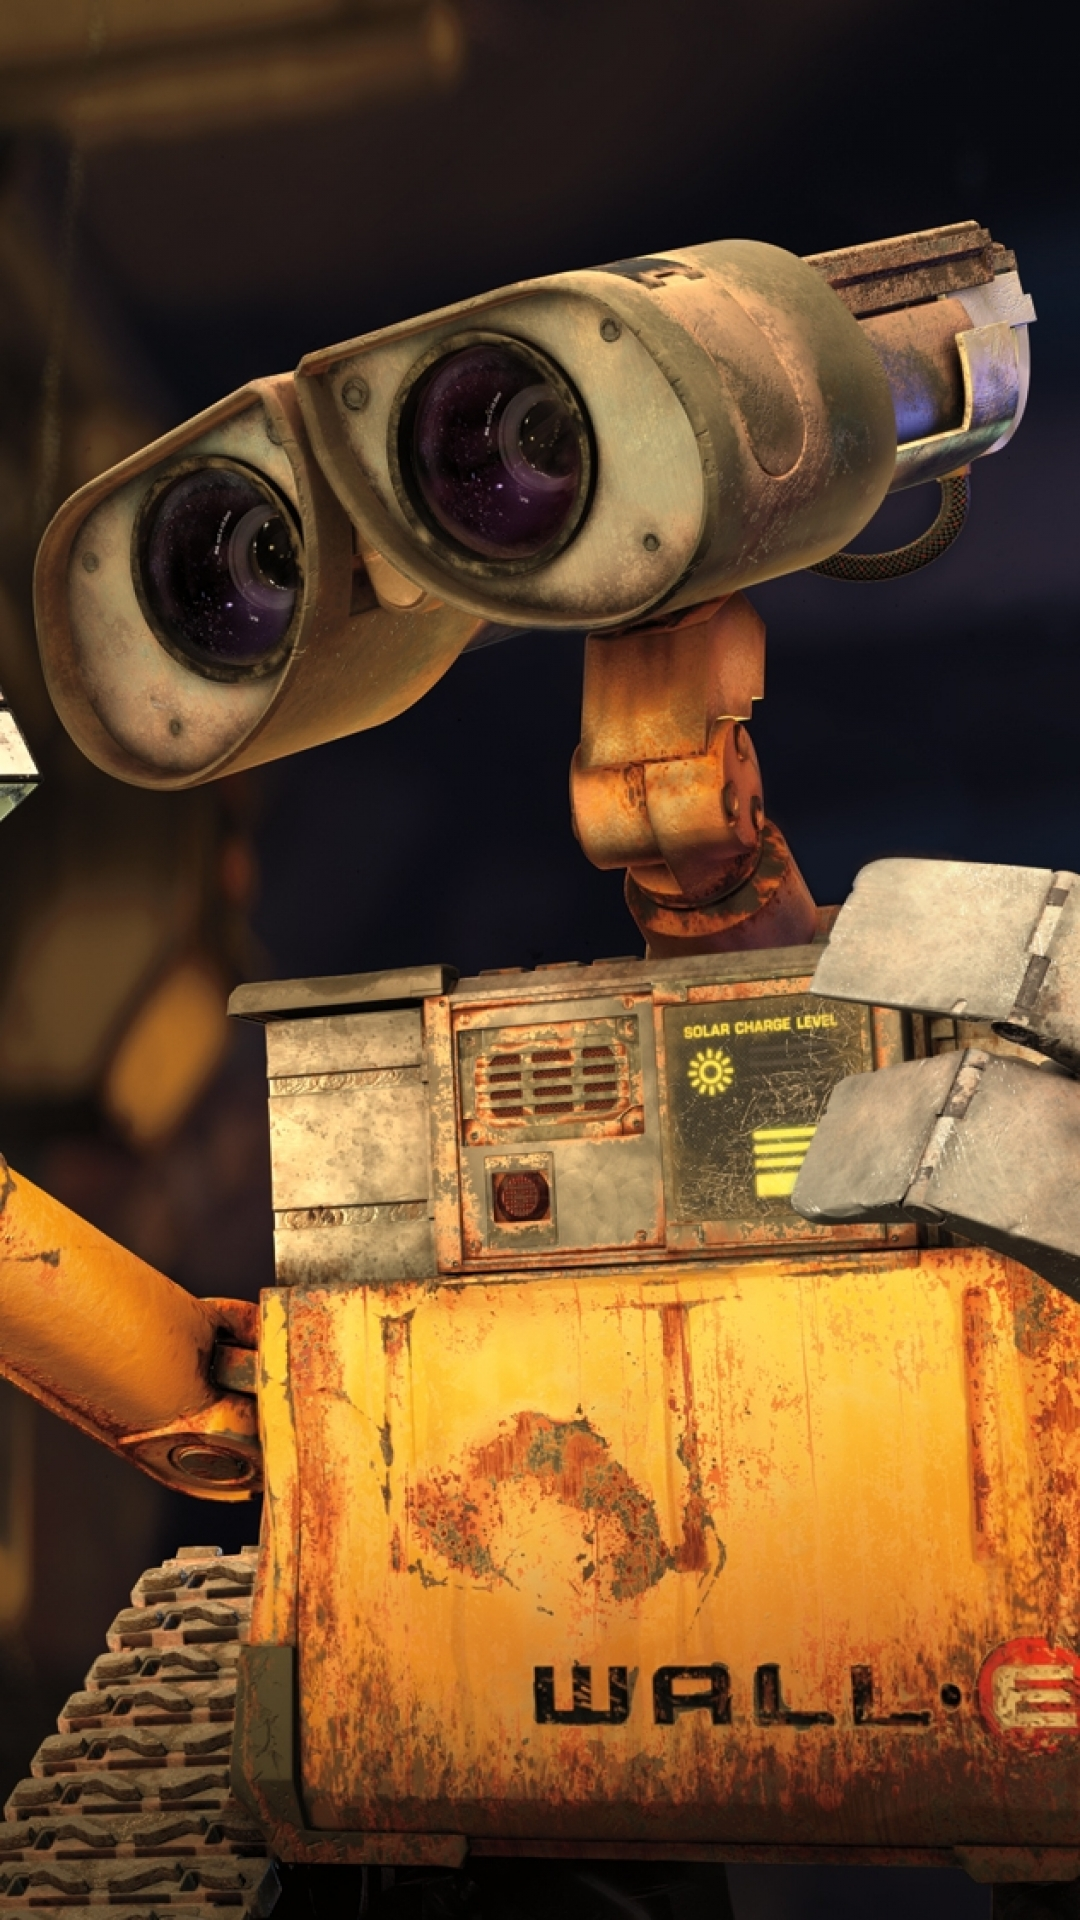 movie/wall·e (1080x1920) wallpaper id: 110000 - mobile abyss